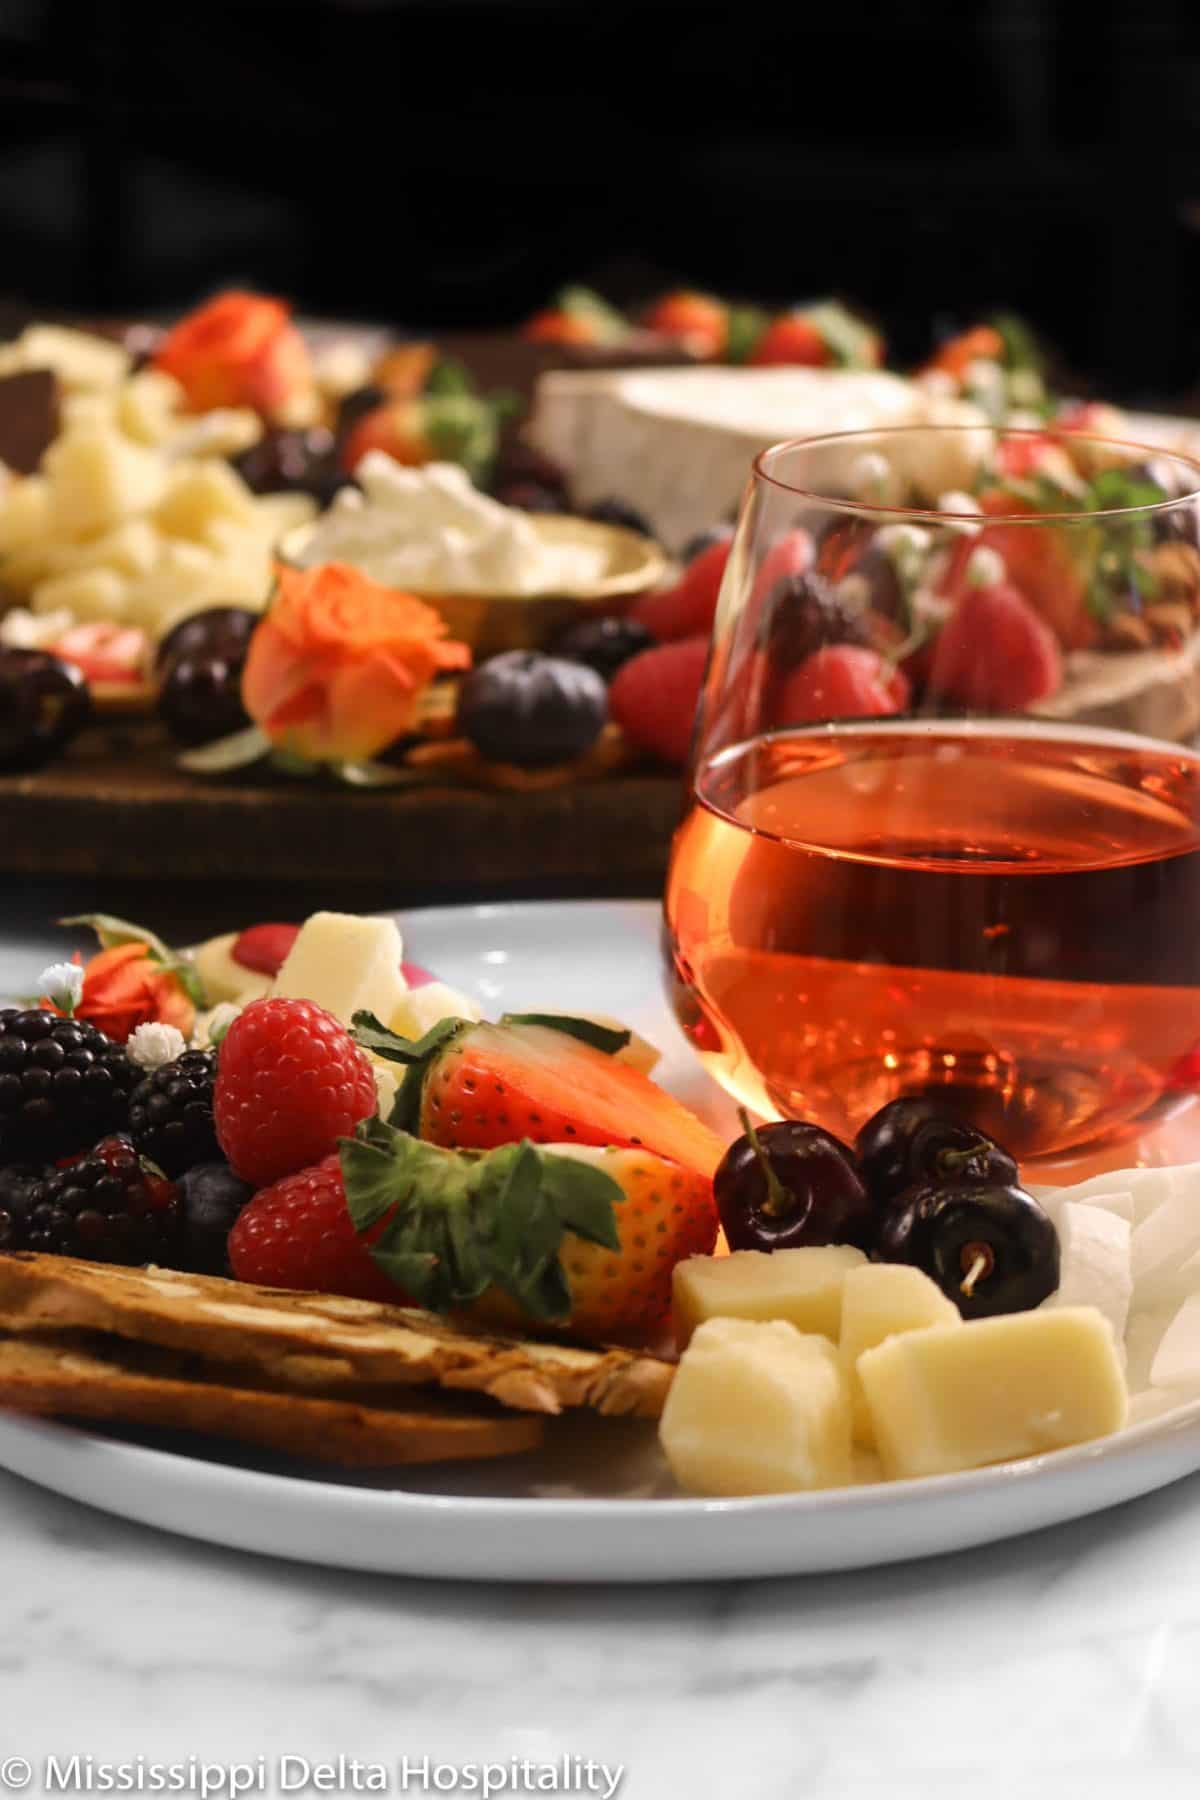 a white plate with cheeses, berries, cookies, and a glass of wine with the cheese board behind it